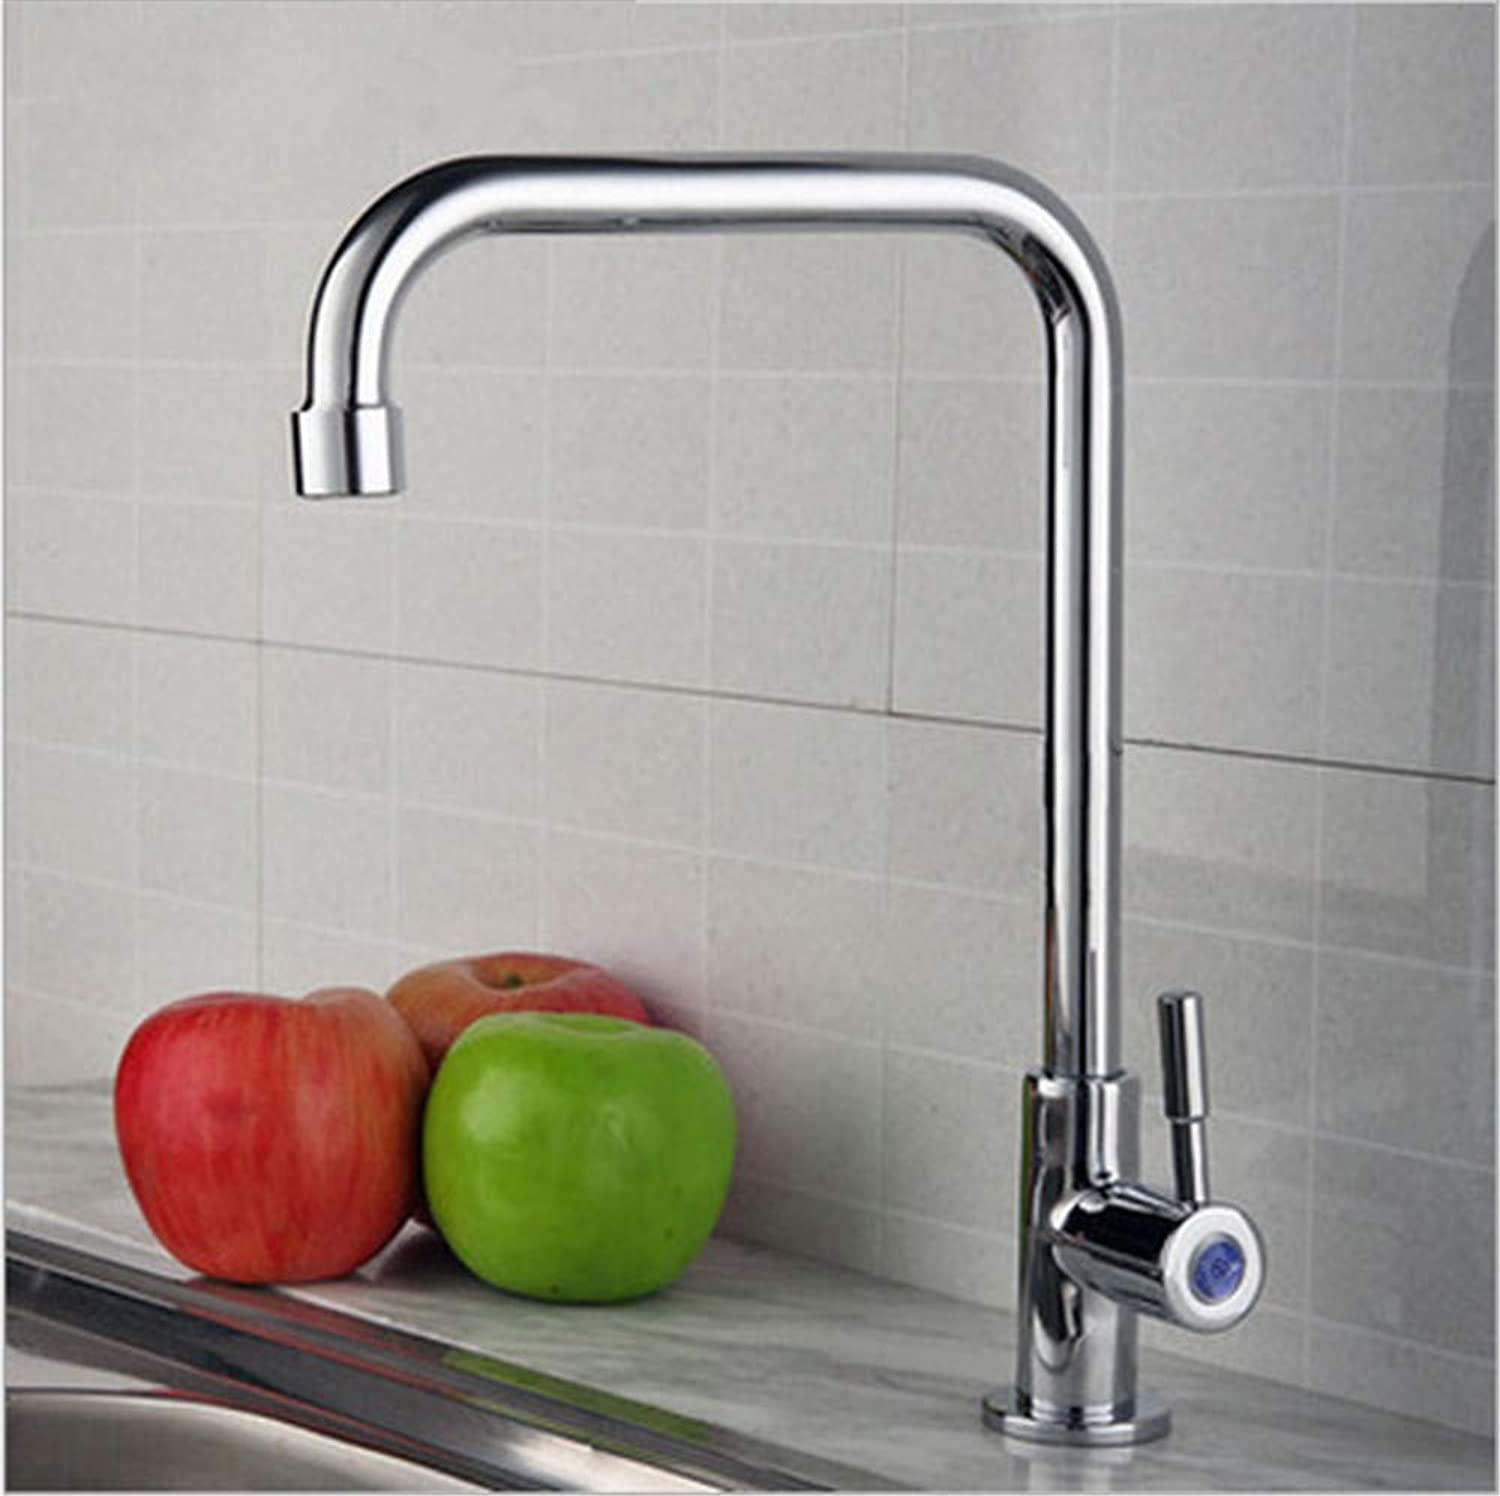 Oudan All Copper Single Cold Kitchen Hole 360 ??redatably Elbow Vegetables Basin Sink Faucet Single Cold Twentysomething (color   Twentysomething Single Cold, Size   -)